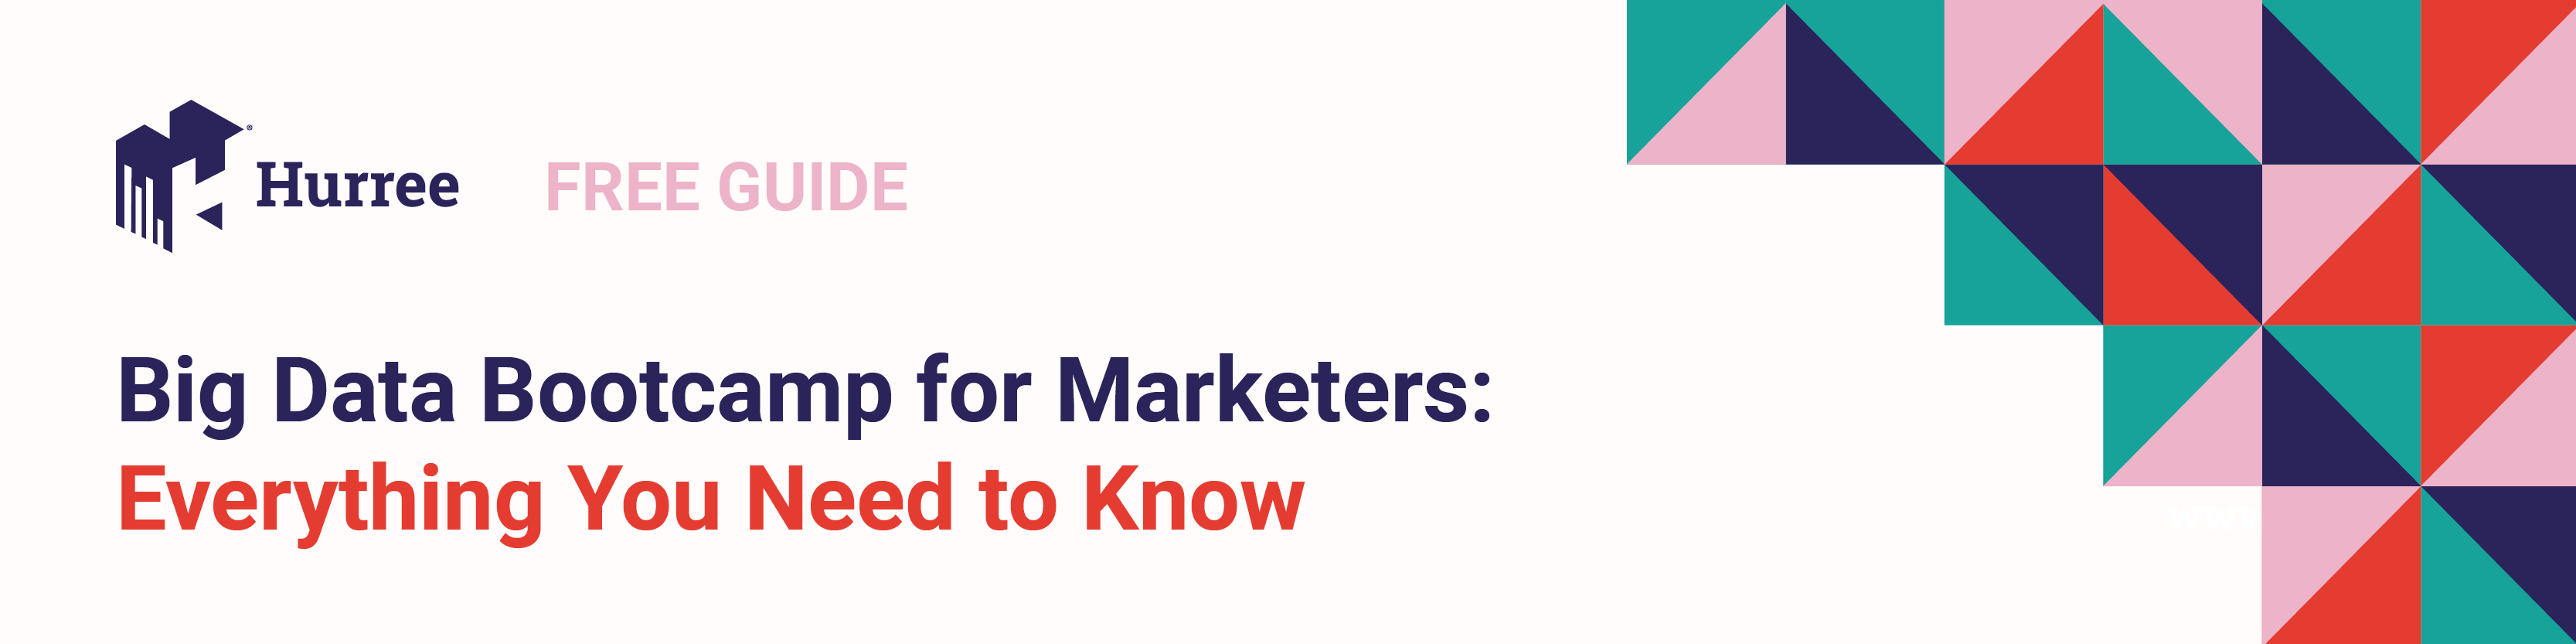 Big Data Bootcamp for Marketers: Free Guide